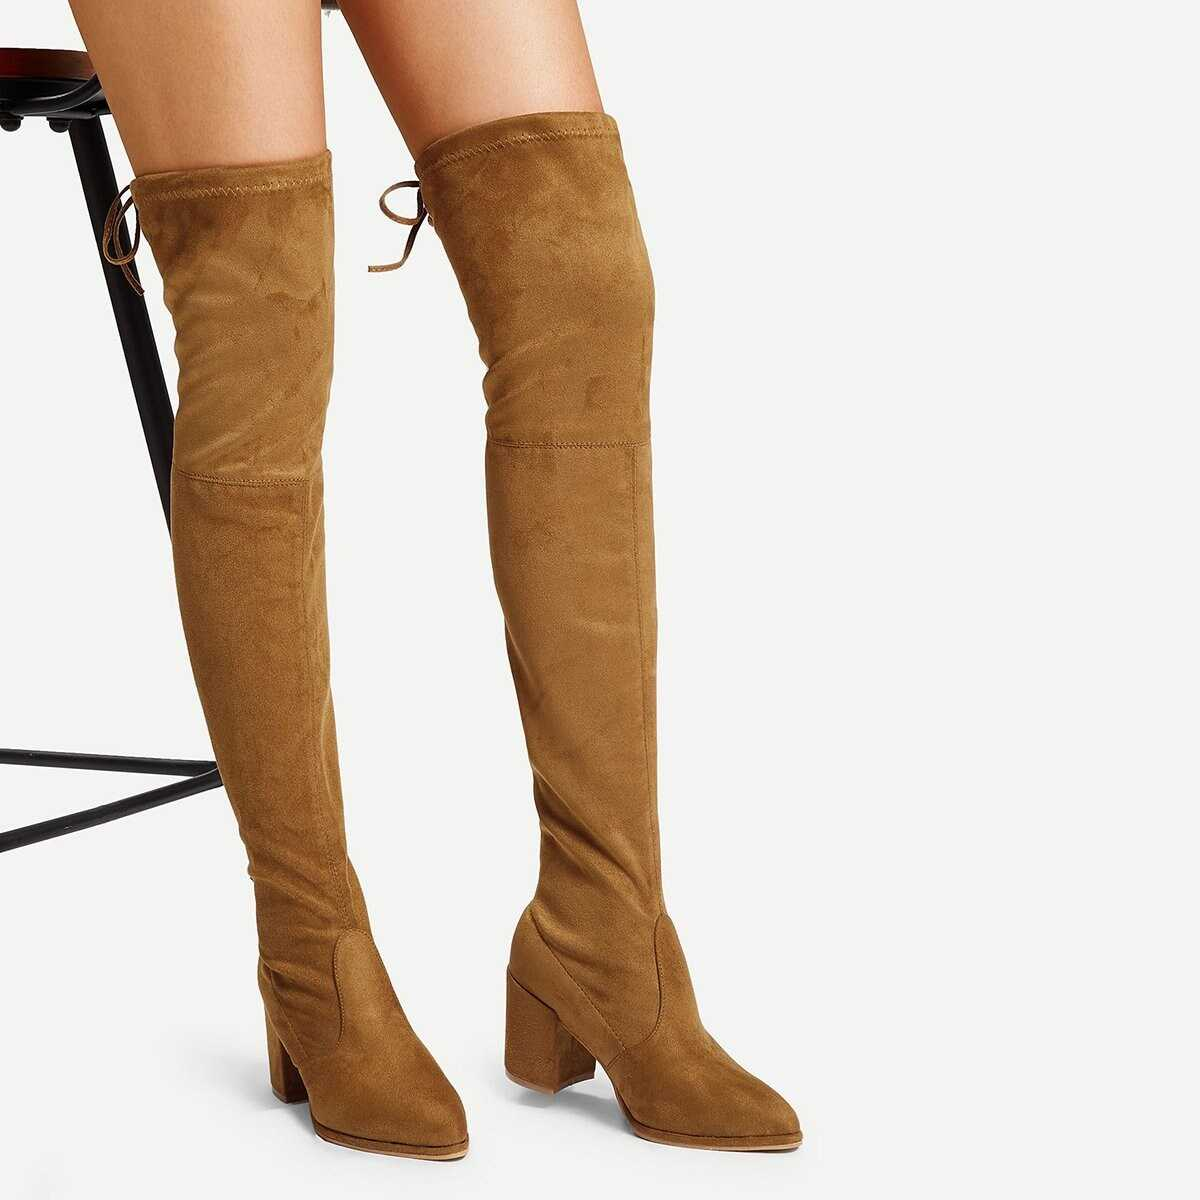 Over The Knee Self Tie Boots - Shein - GOOFASH